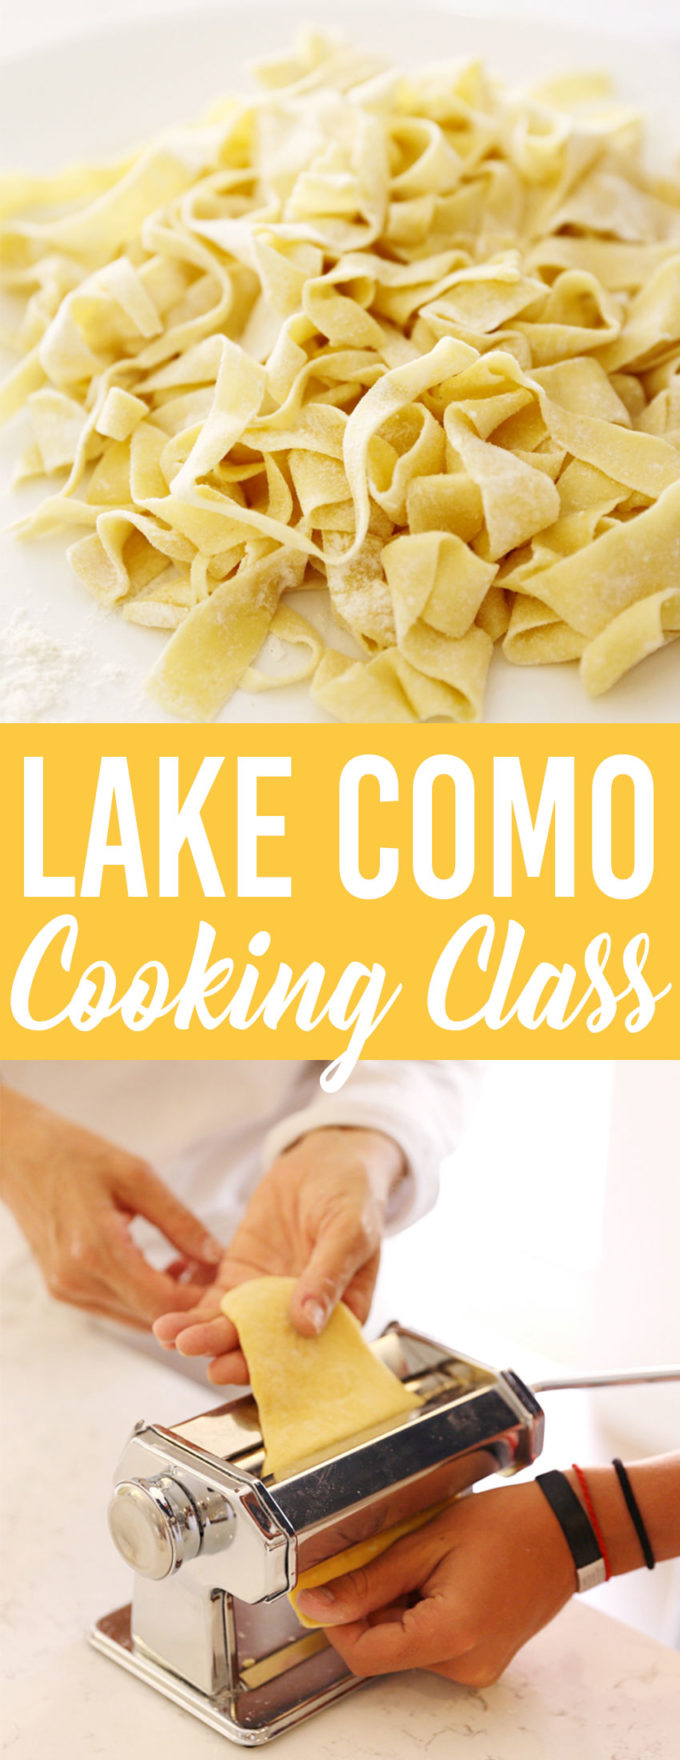 Cooking Class in Lake Como Italy